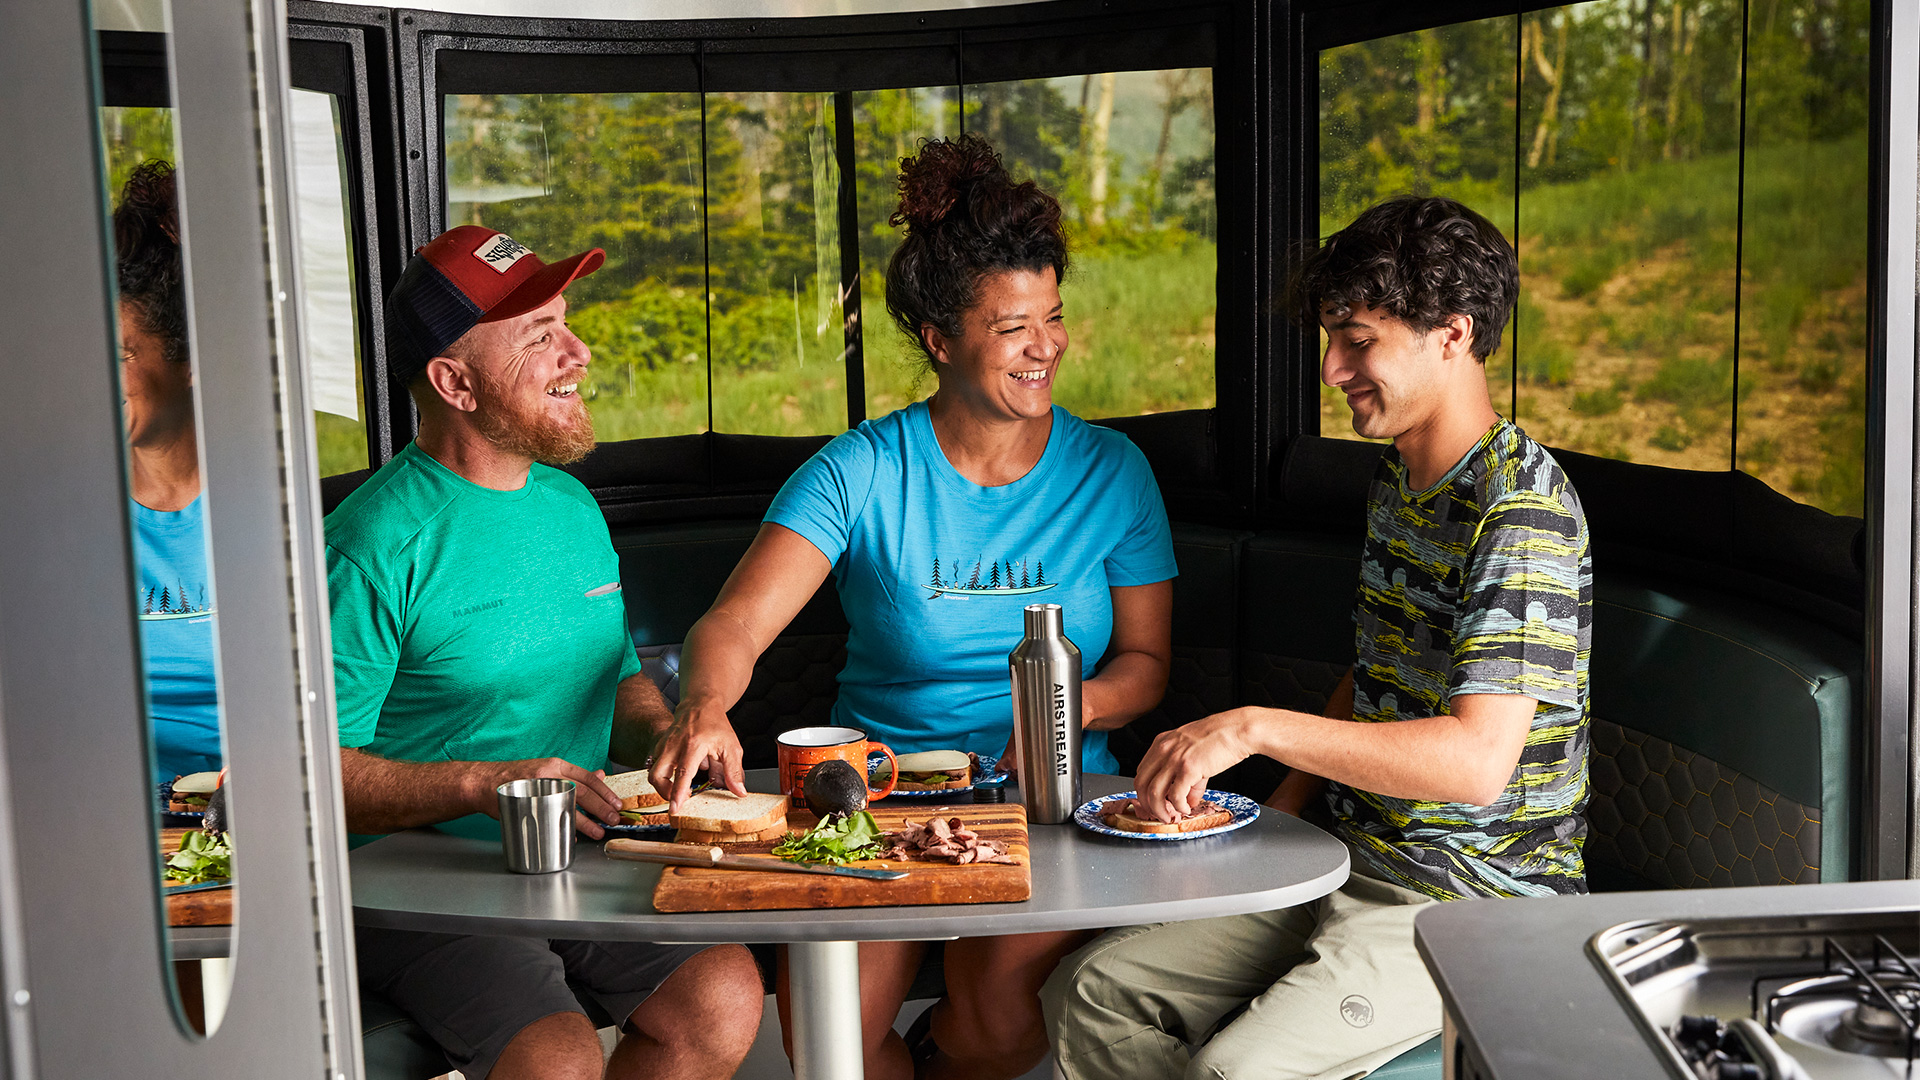 Airstream-Basecamp-20-Front-Dinette-up-in-Eating-Position-with-Family